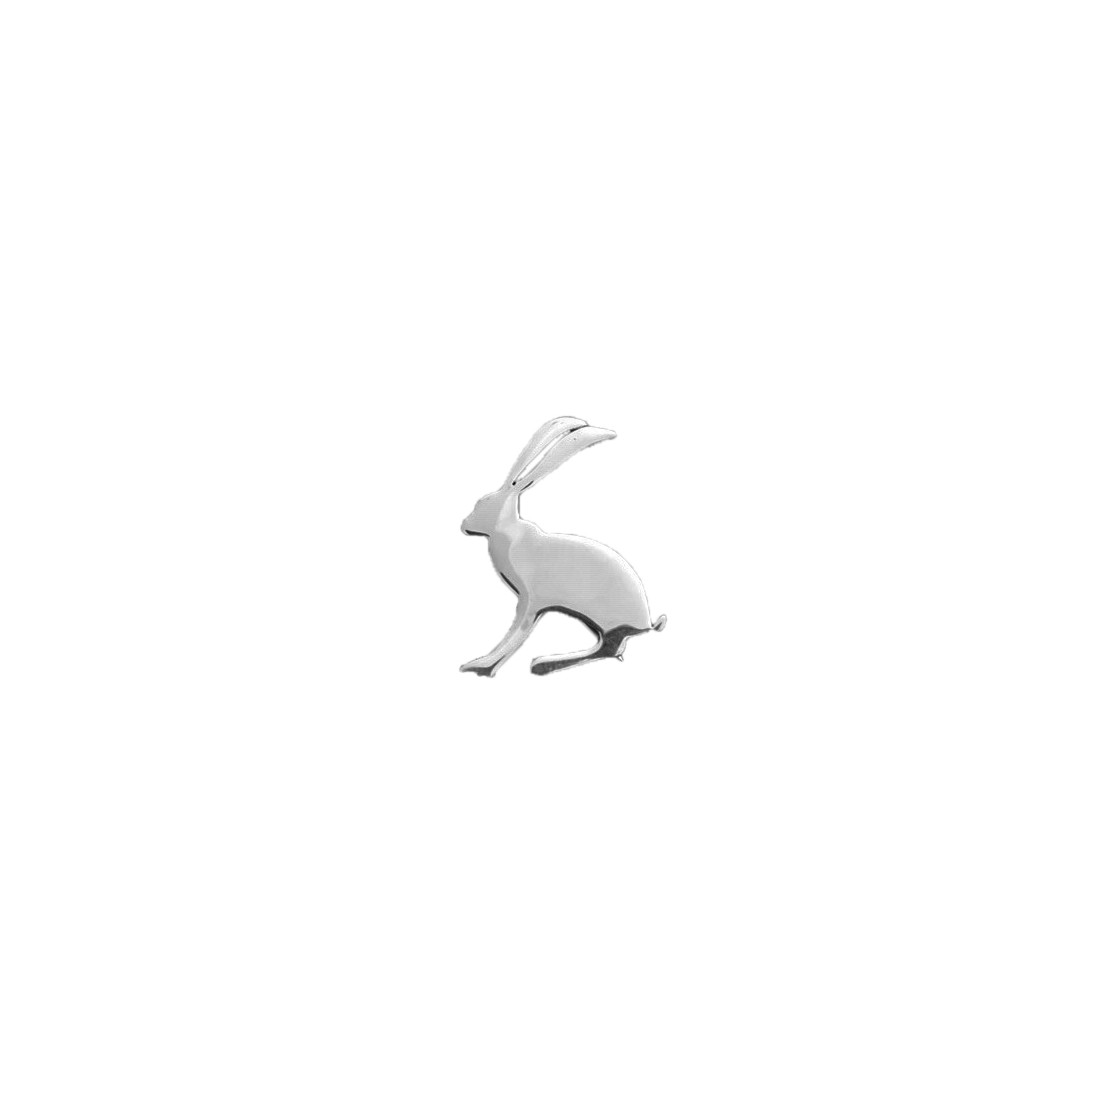 Exclusive Sterling Silver Joules Hare Brooch